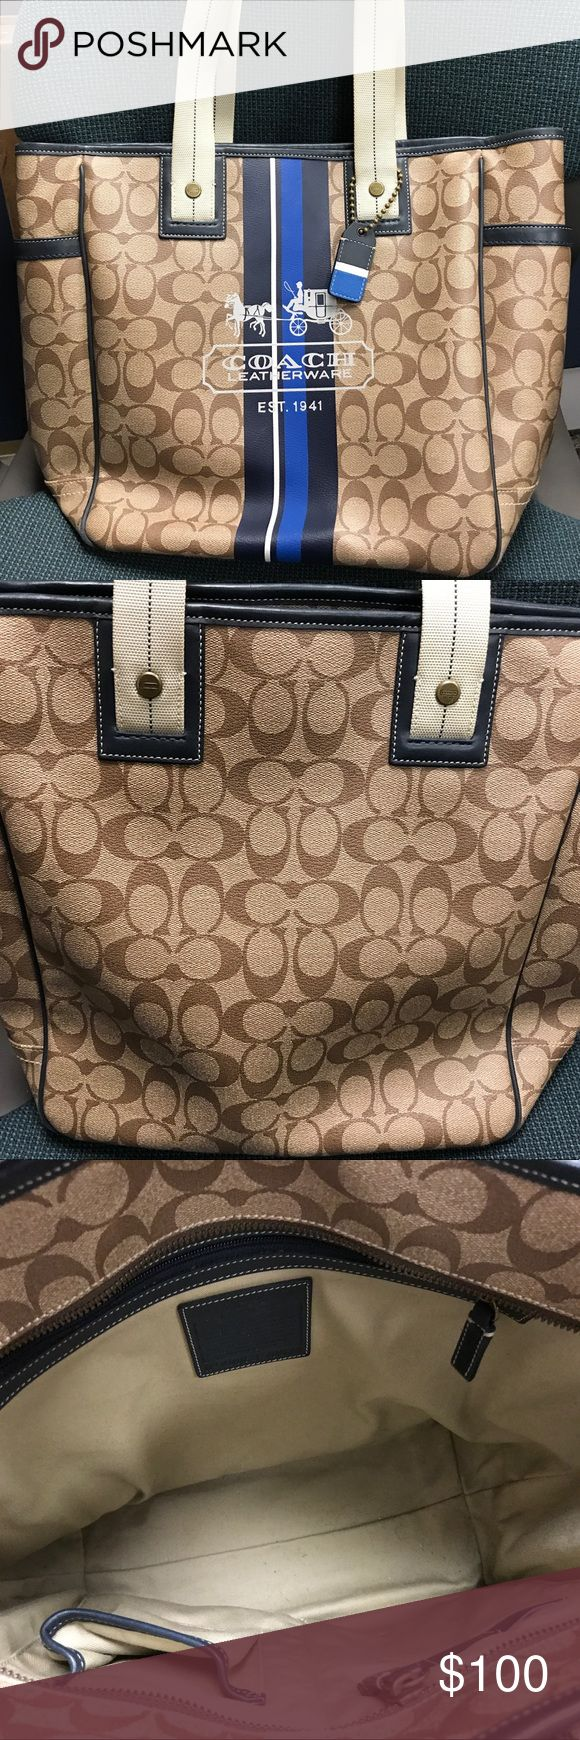 Women's Coach Tote Bag Women's Coach tote bag. In almost new condition! Only used a couple items, so still look new! Bundle for deals! Coach Bags Totes